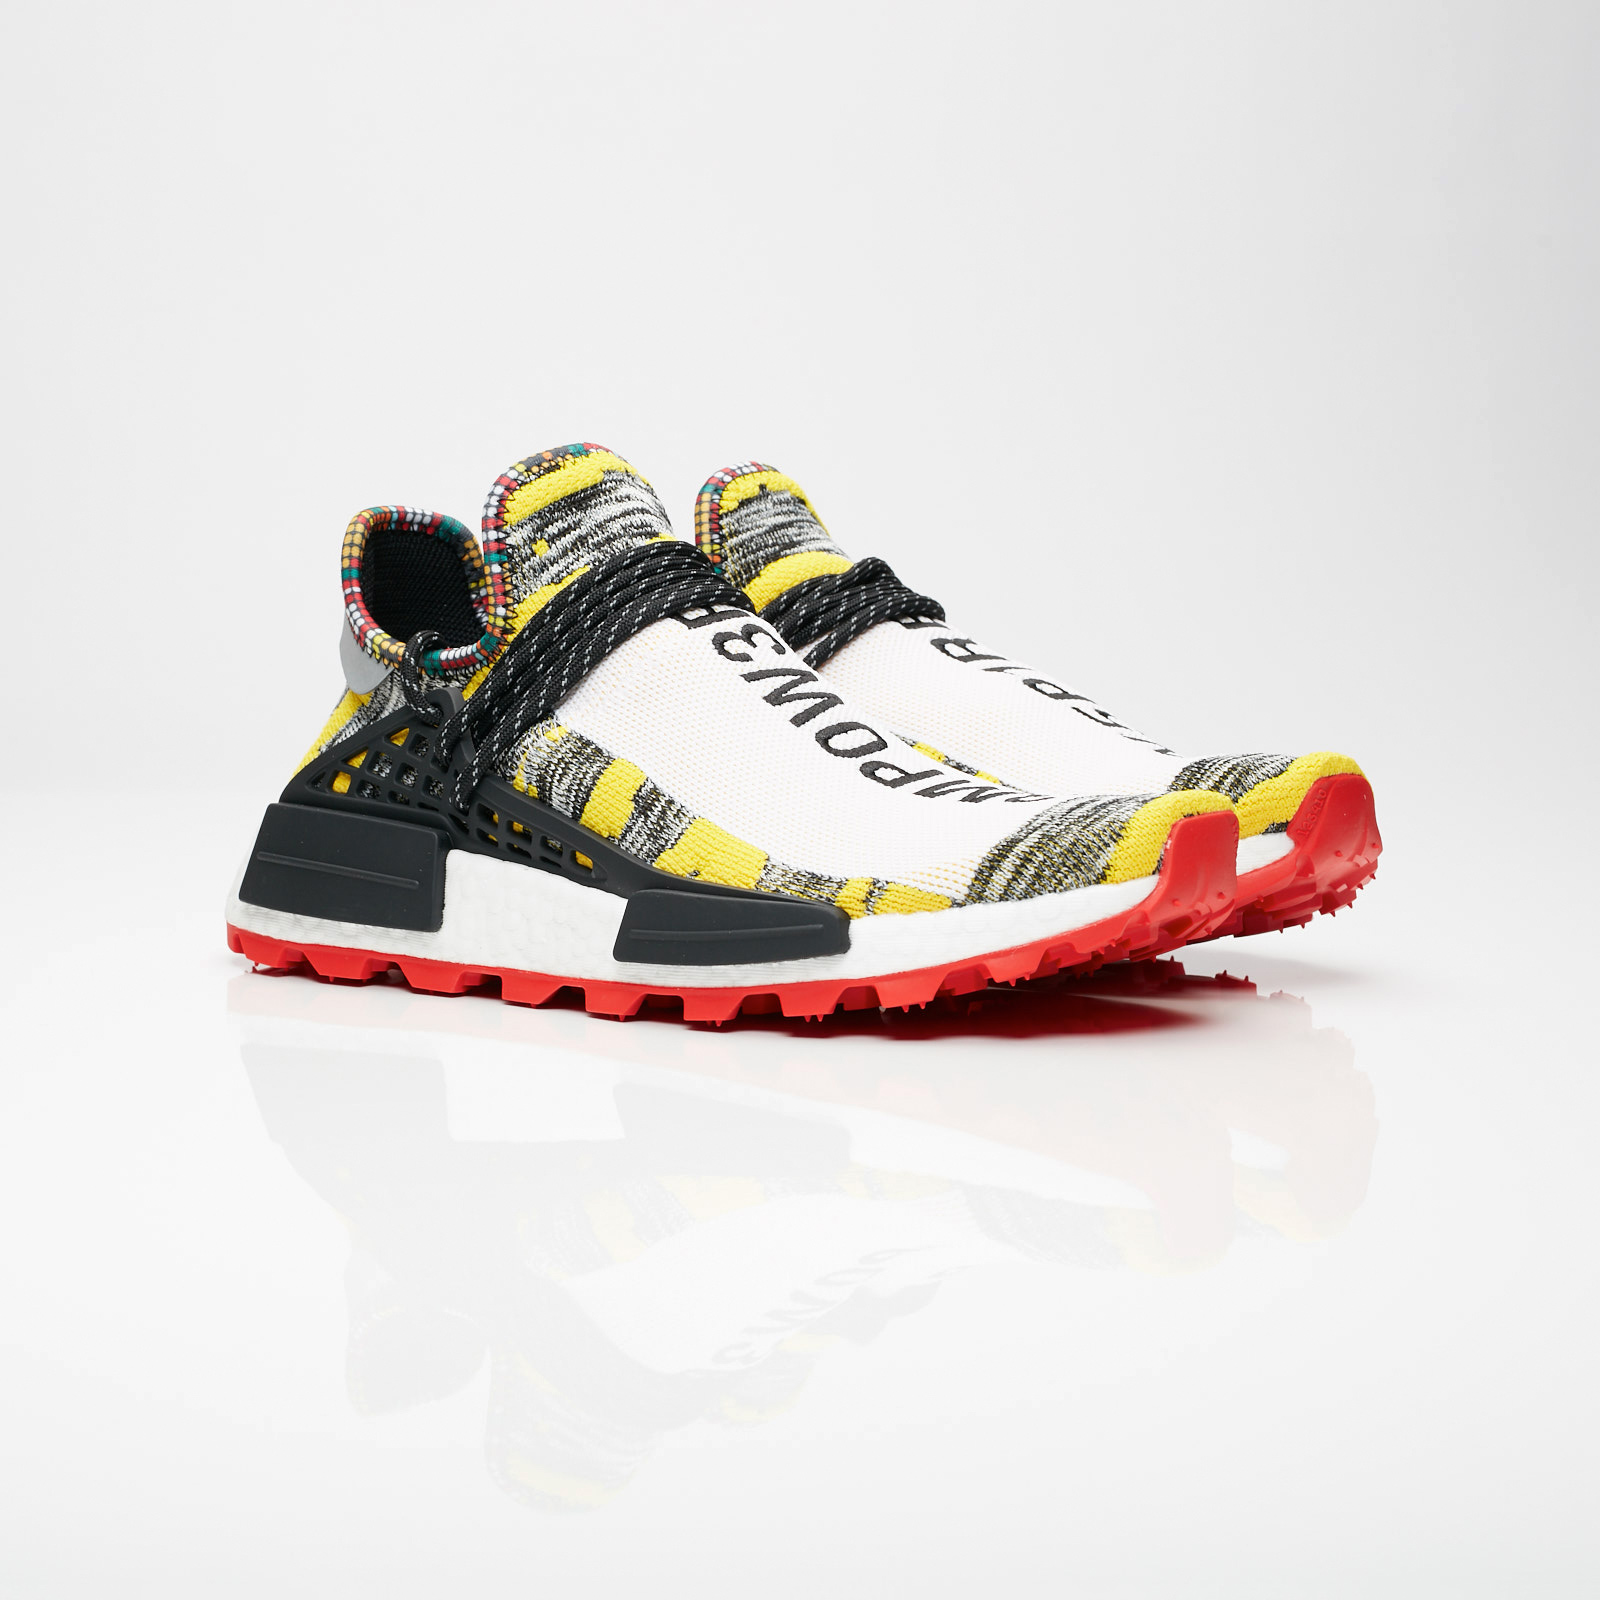 73ee8e1d0 adidas Solar HU NMD x Pharrell Williams - Bb9527 - Sneakersnstuff ...